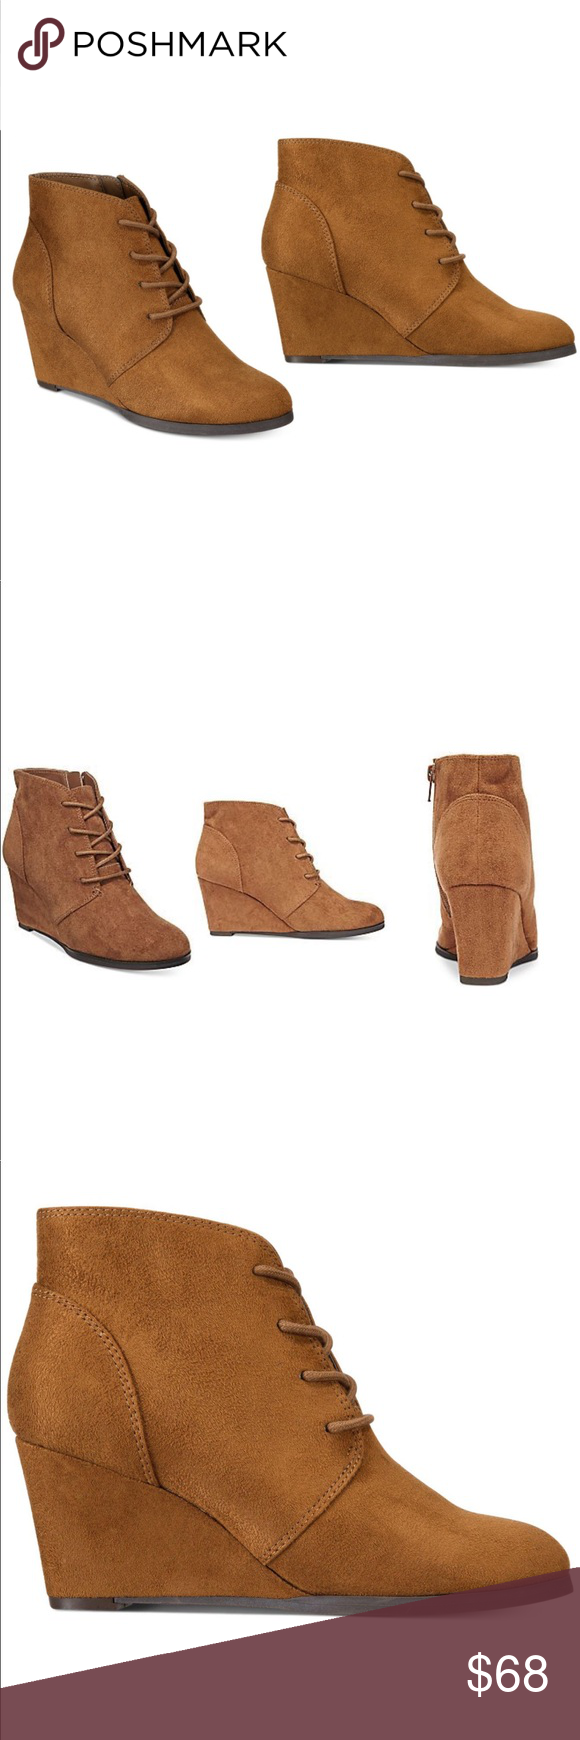 35ac8175775 Cognac Lace Up Wedge Booties Fabric Shaft measures approximately 5